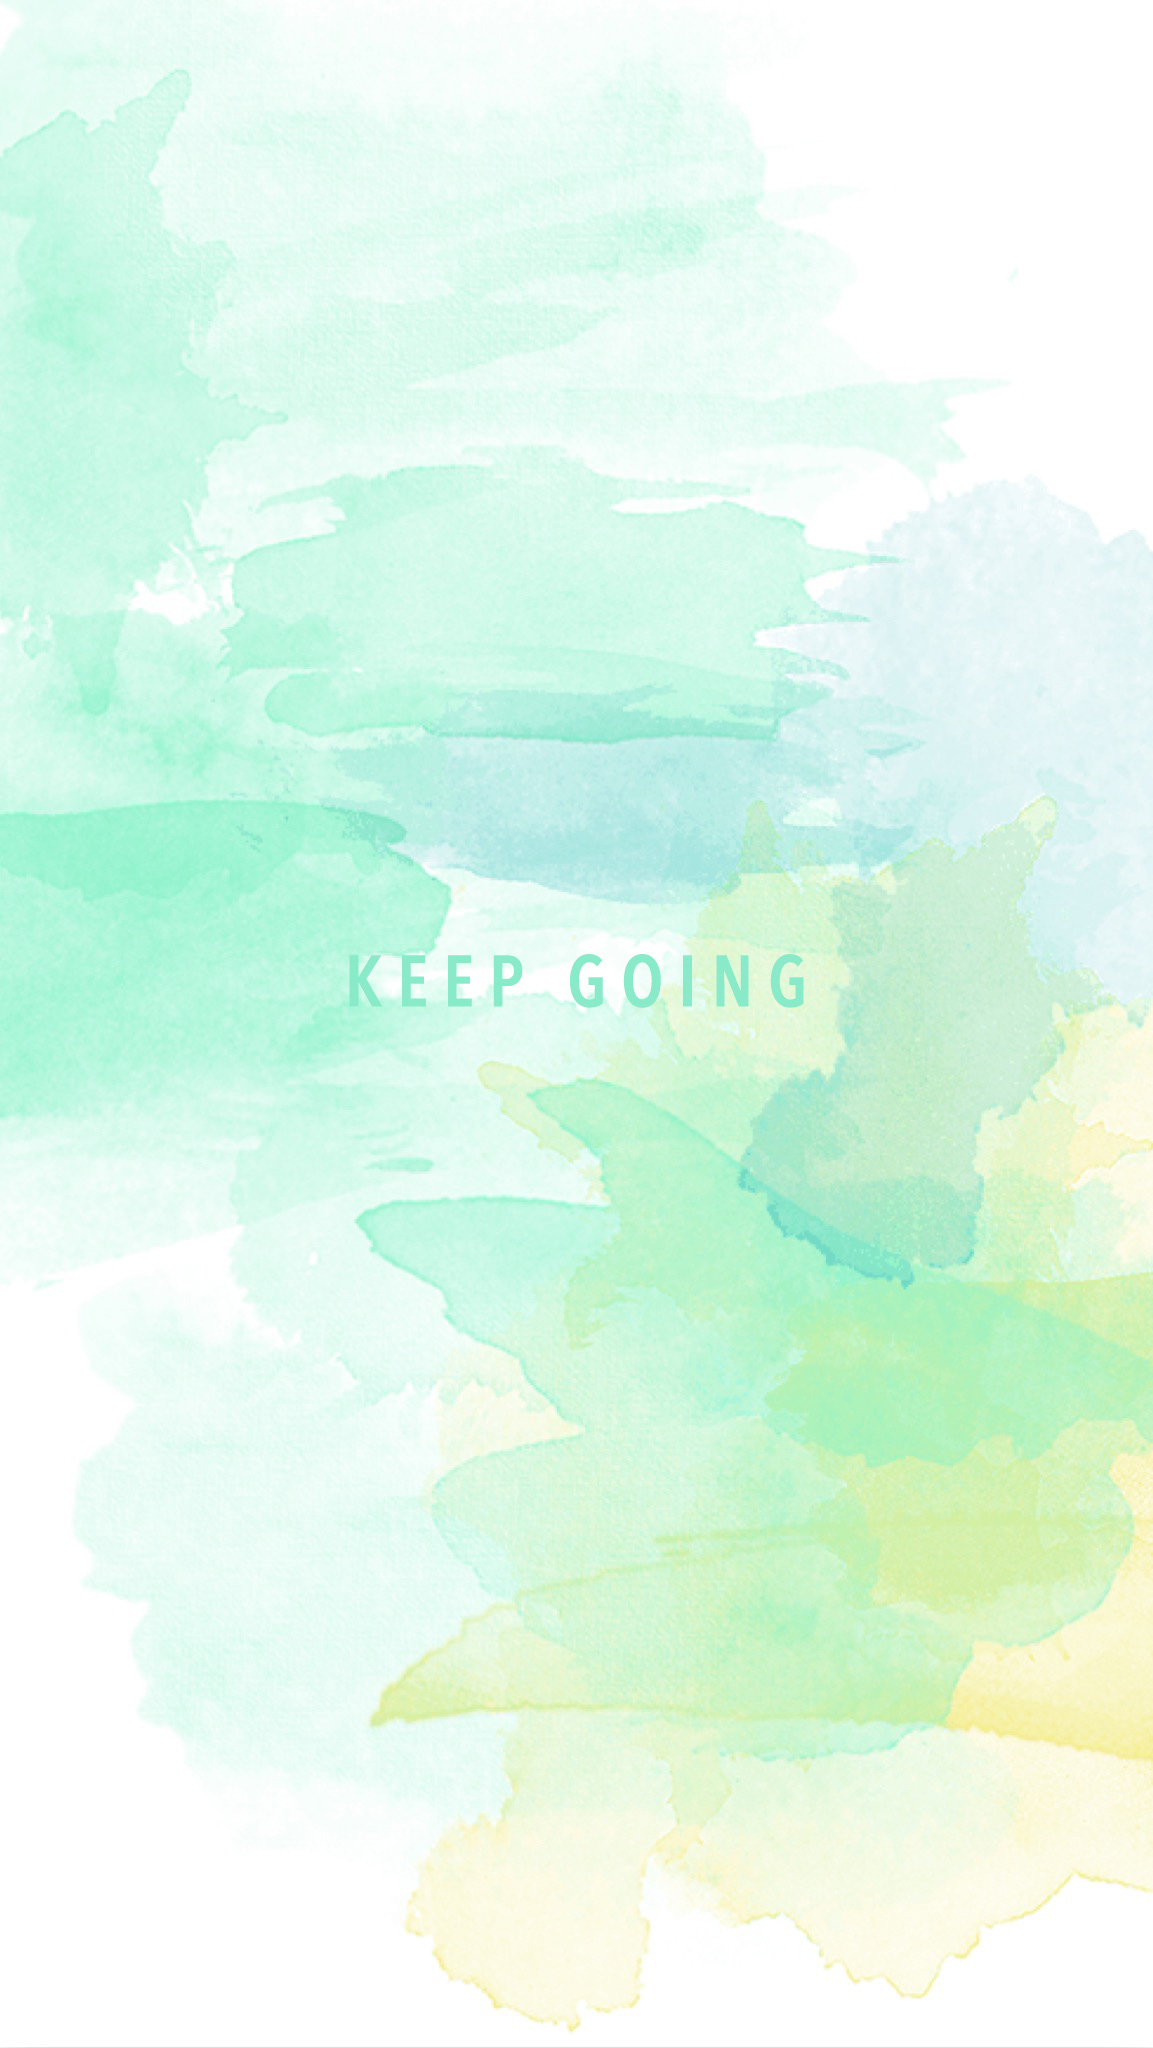 keep going wall paper iphone - kraft&mint